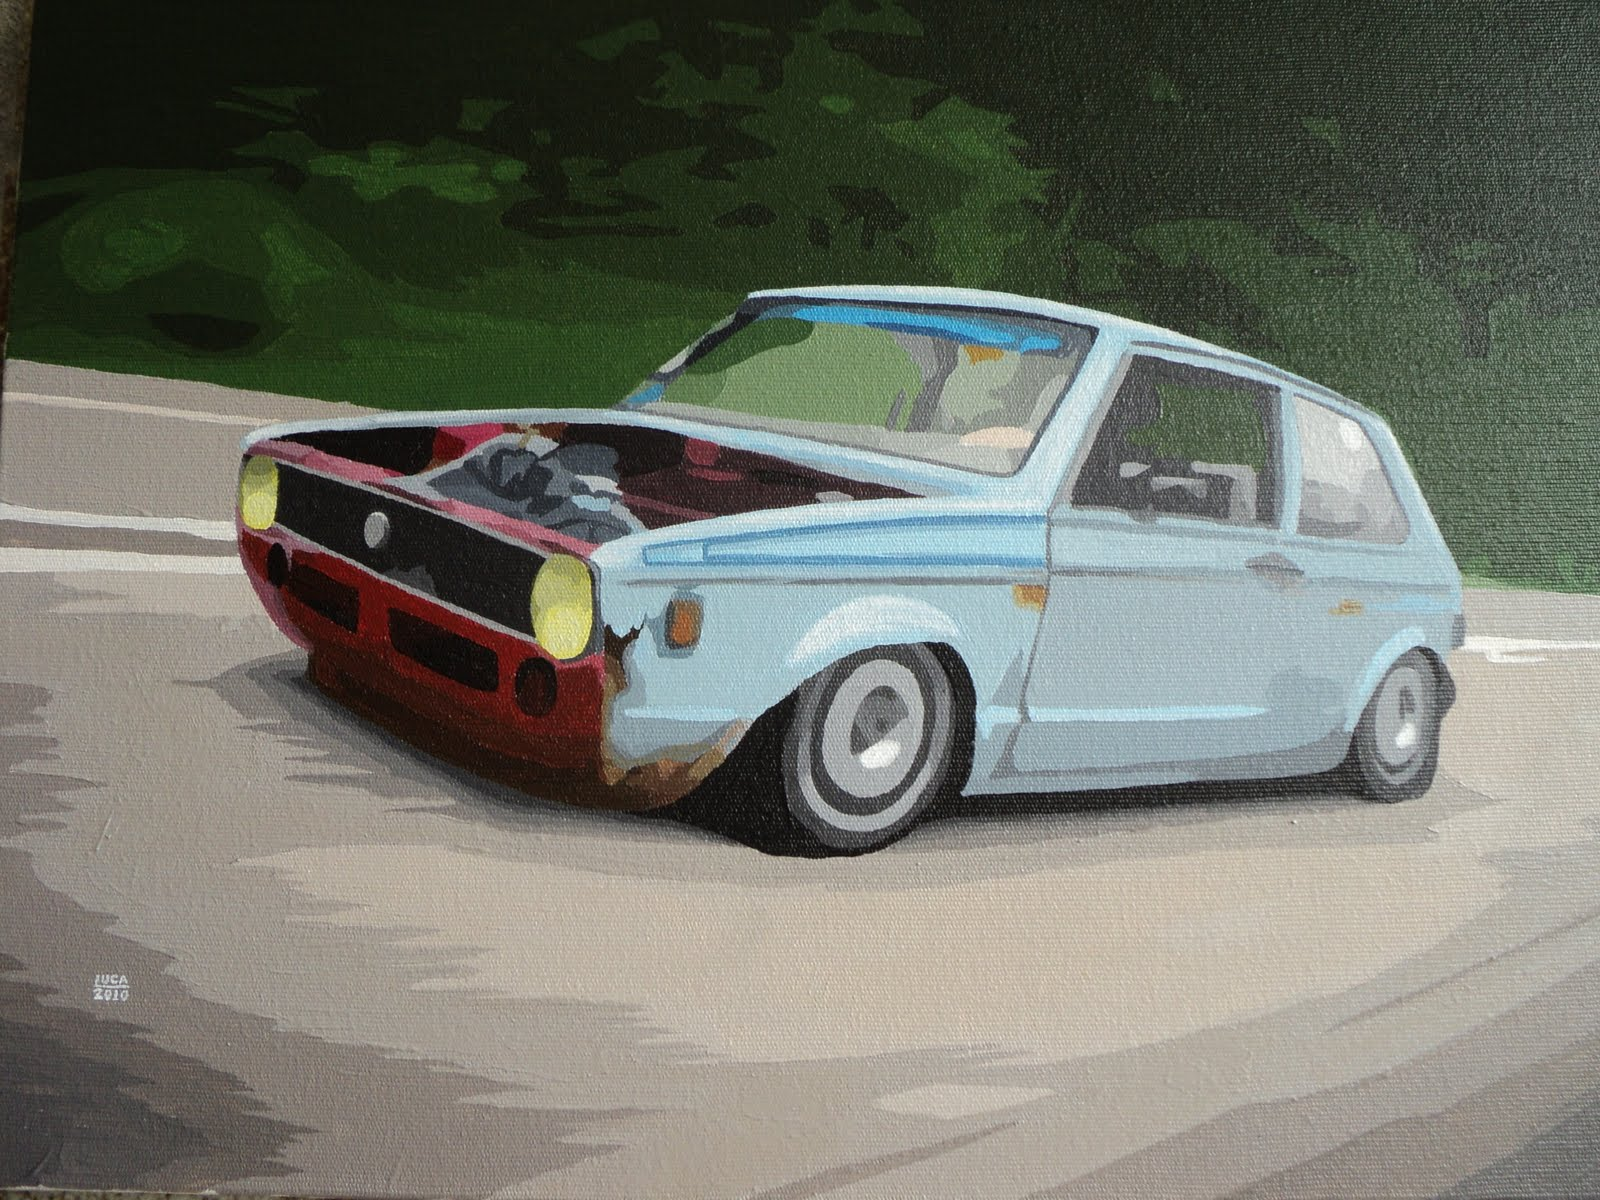 Car Art: Volkswagen Golf MK1 - Acrylic on canvas 30x40 cm